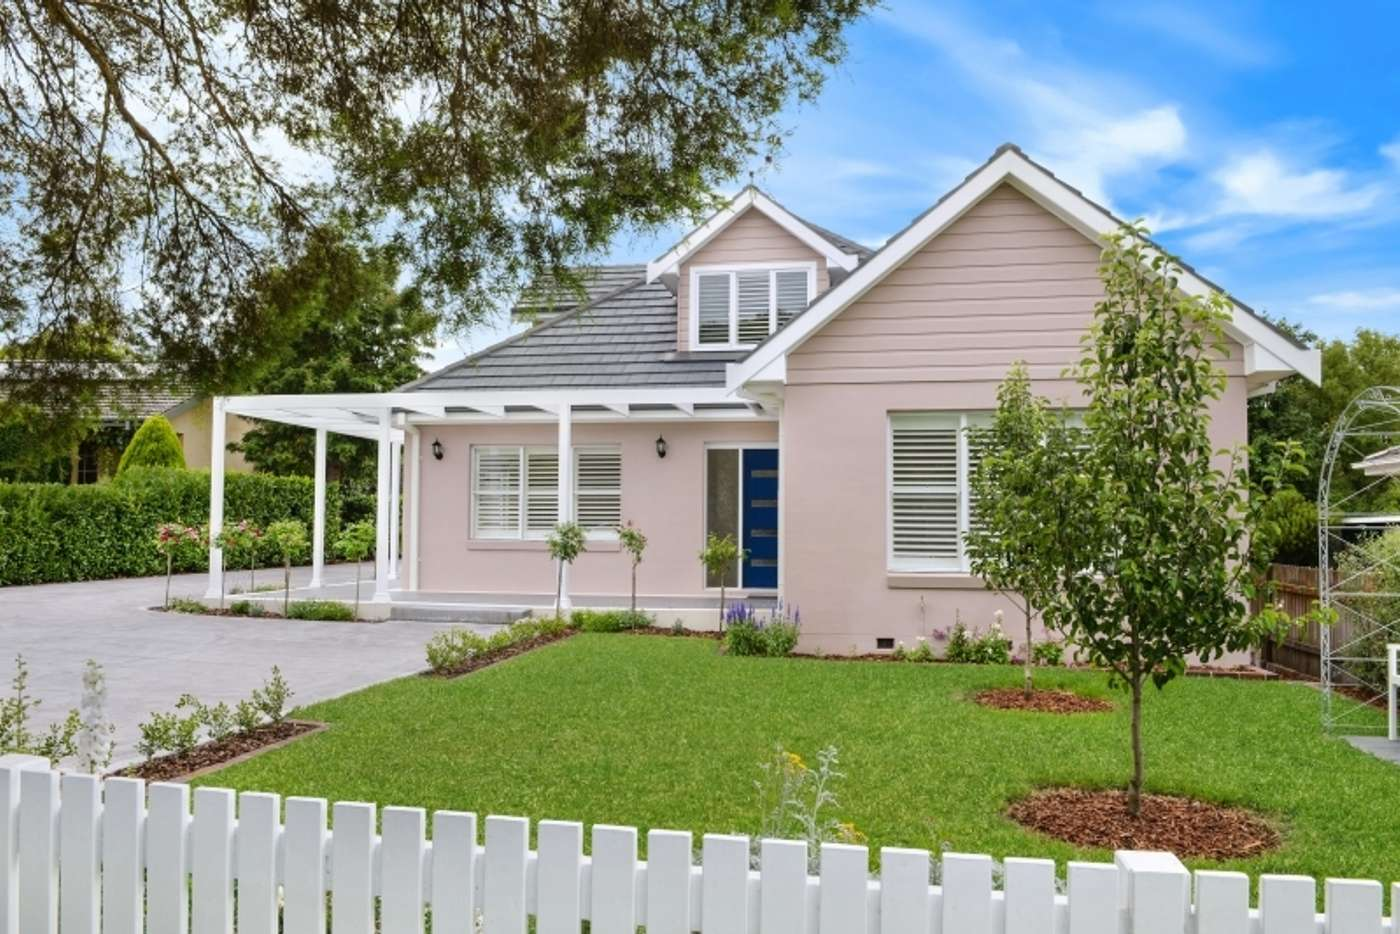 Main view of Homely house listing, 10 Annesley Avenue, Bowral NSW 2576